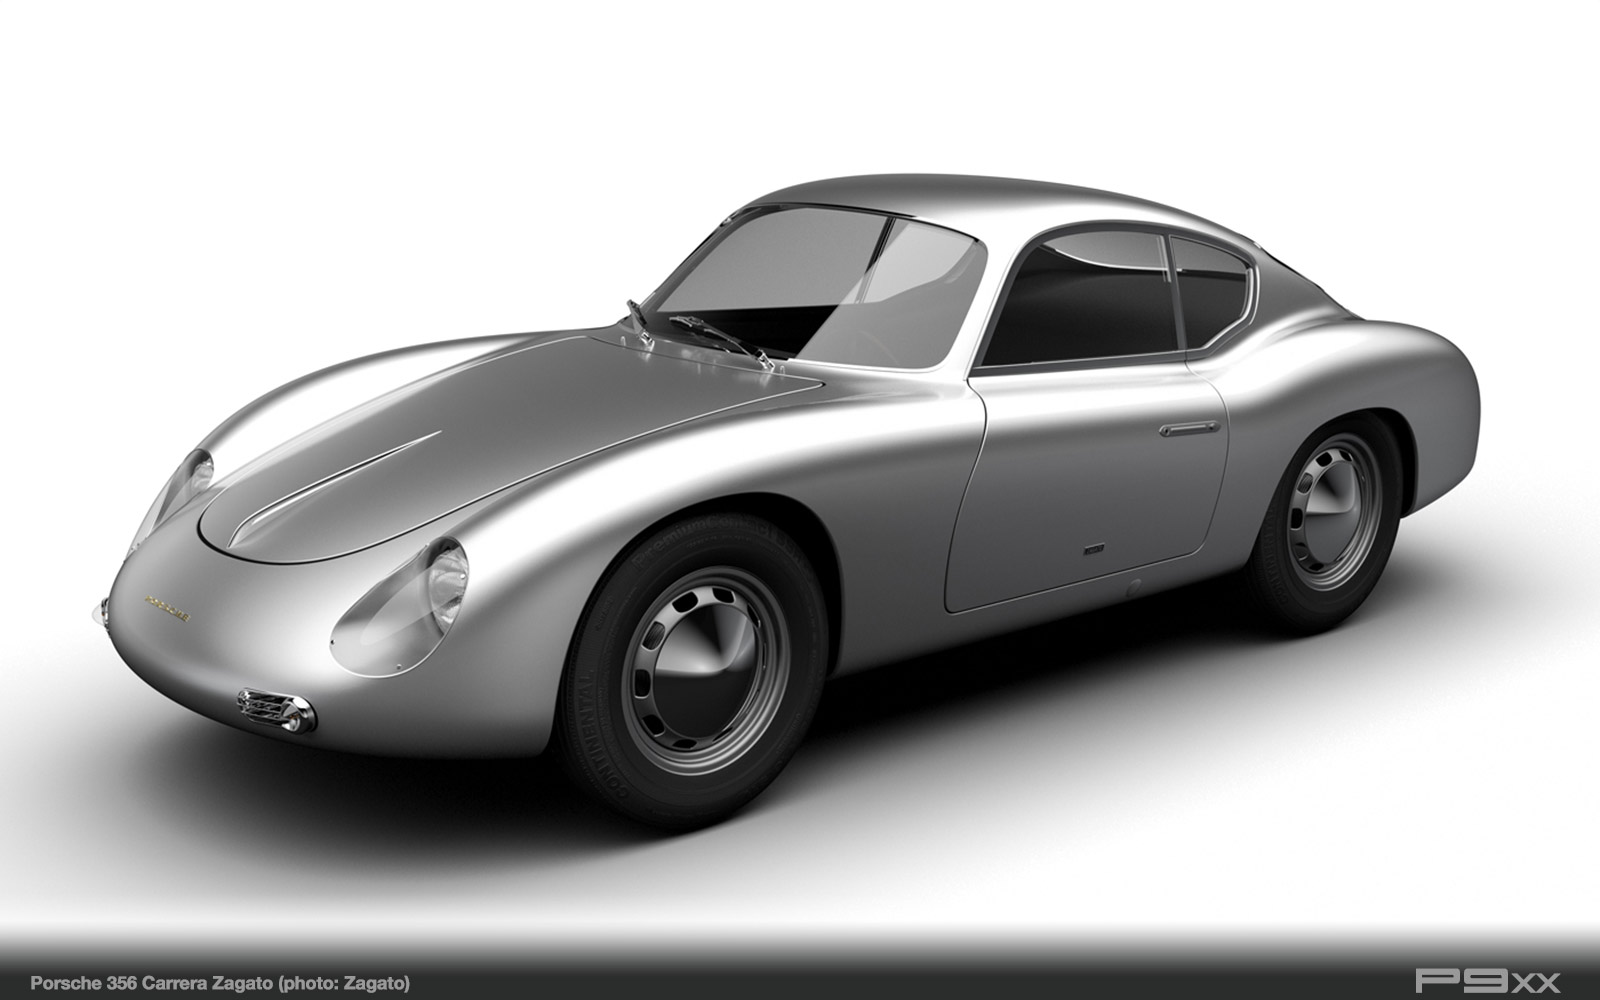 356 Speedster Zagato And 356 Carrera Zagato Return To Life P9xx